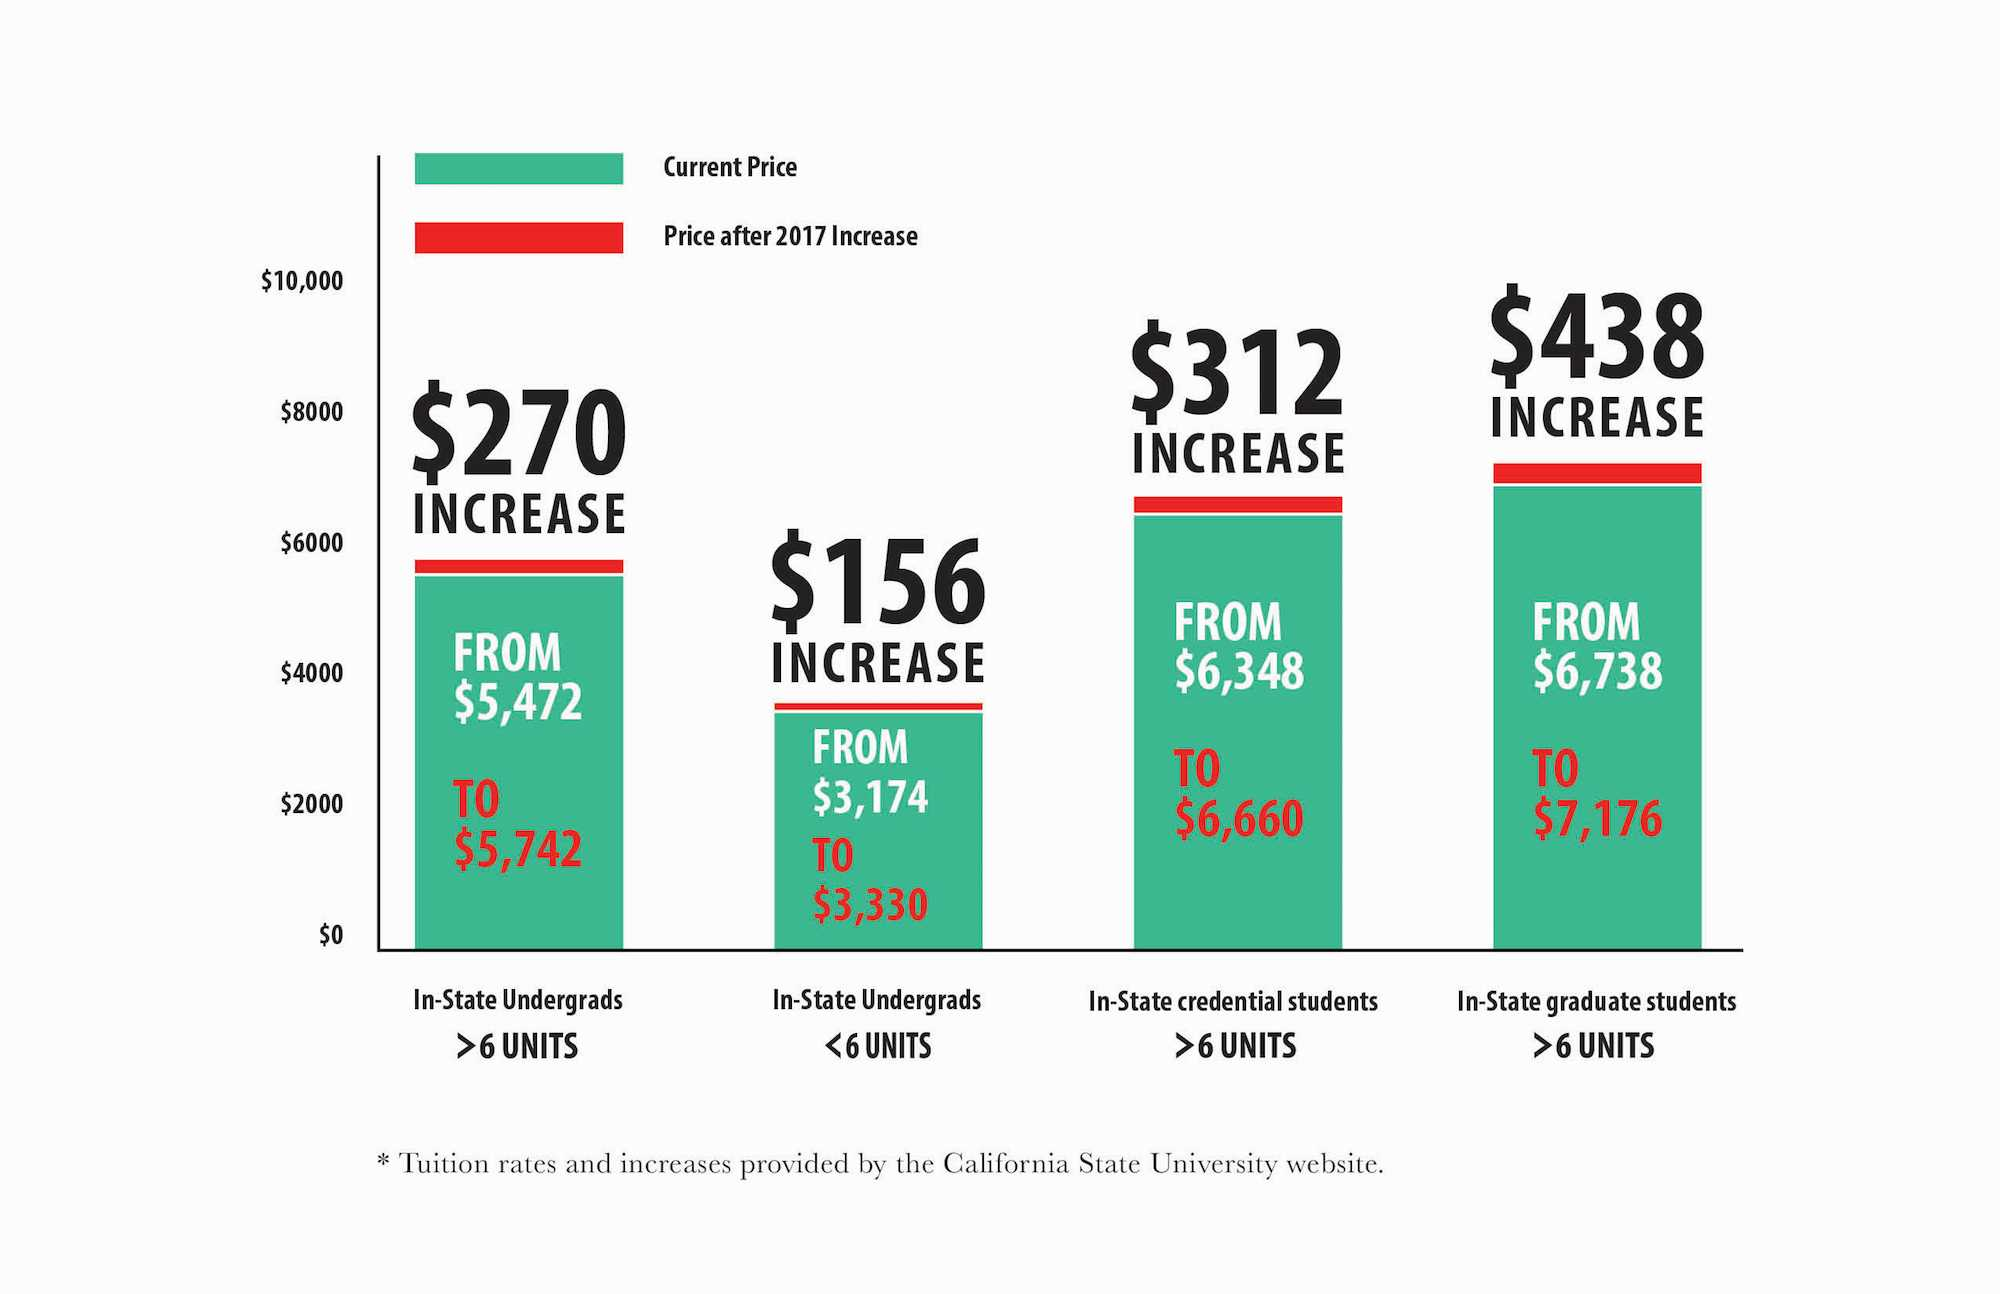 The tuition increase approved by the California State University Board of Trustees will raise annual tuition for in-state undergraduates taking more than six units by $270. (Graphic by Pierce Grohosky)